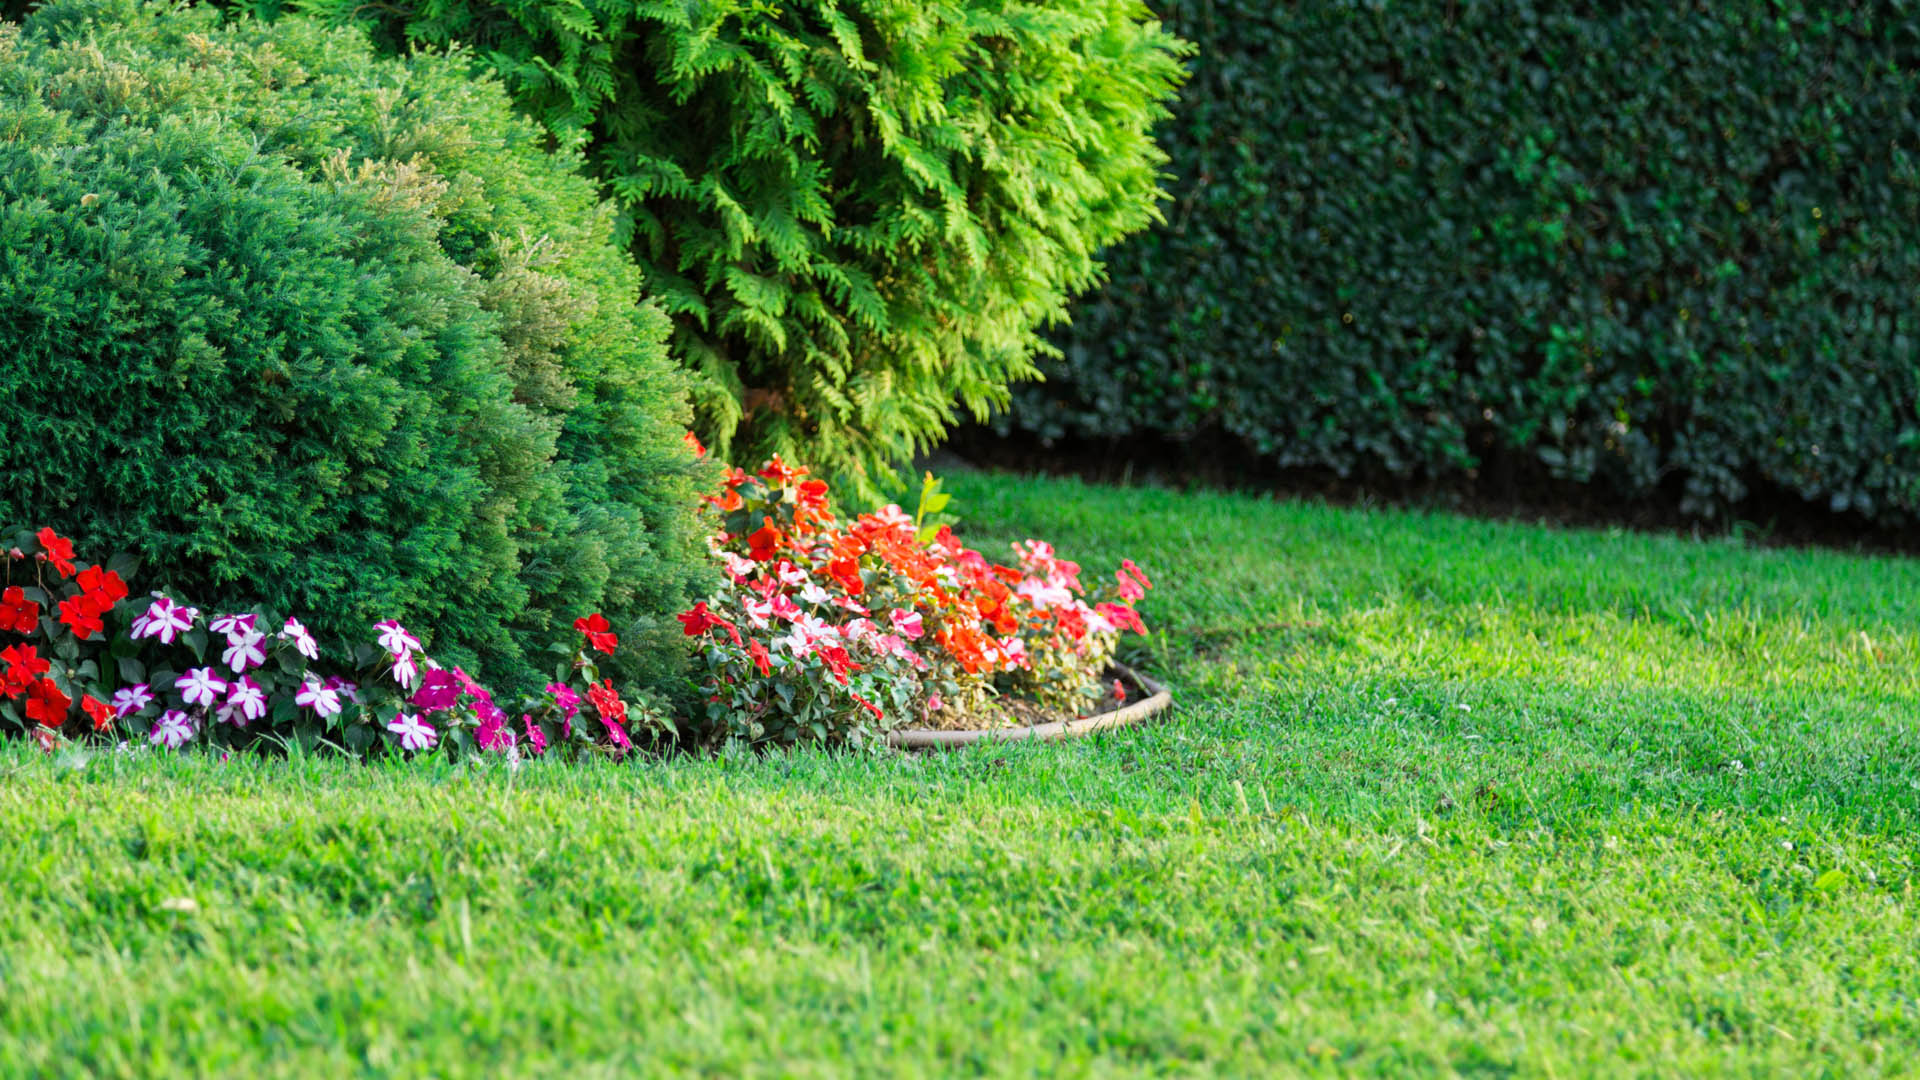 Green lawn and healthy landscaping with lawn fertilization treatment.